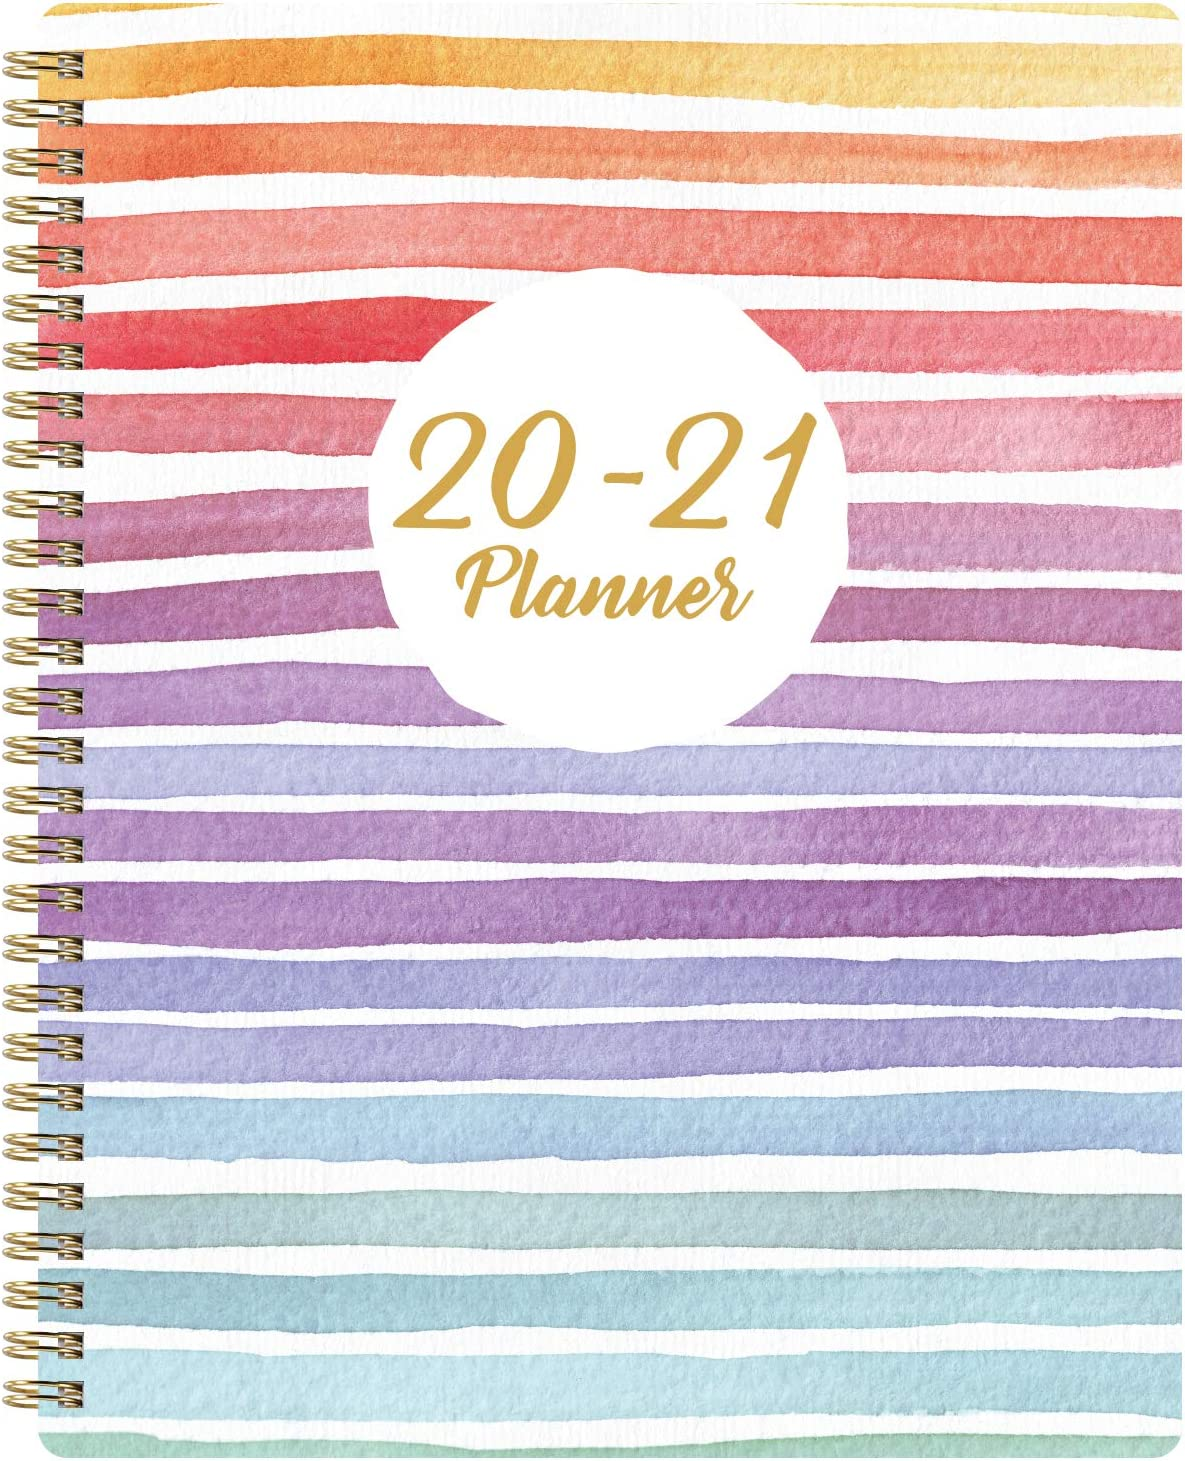 """2020-2021 Planner - Academic Weekly & Monthly Planner with Marked Tabs, 8"""" x 10"""", July 2020 - June 2021, Contacts + Calendar + Holidays, Twin-Wire Binding with Thick Paper - Colorful and Fun"""